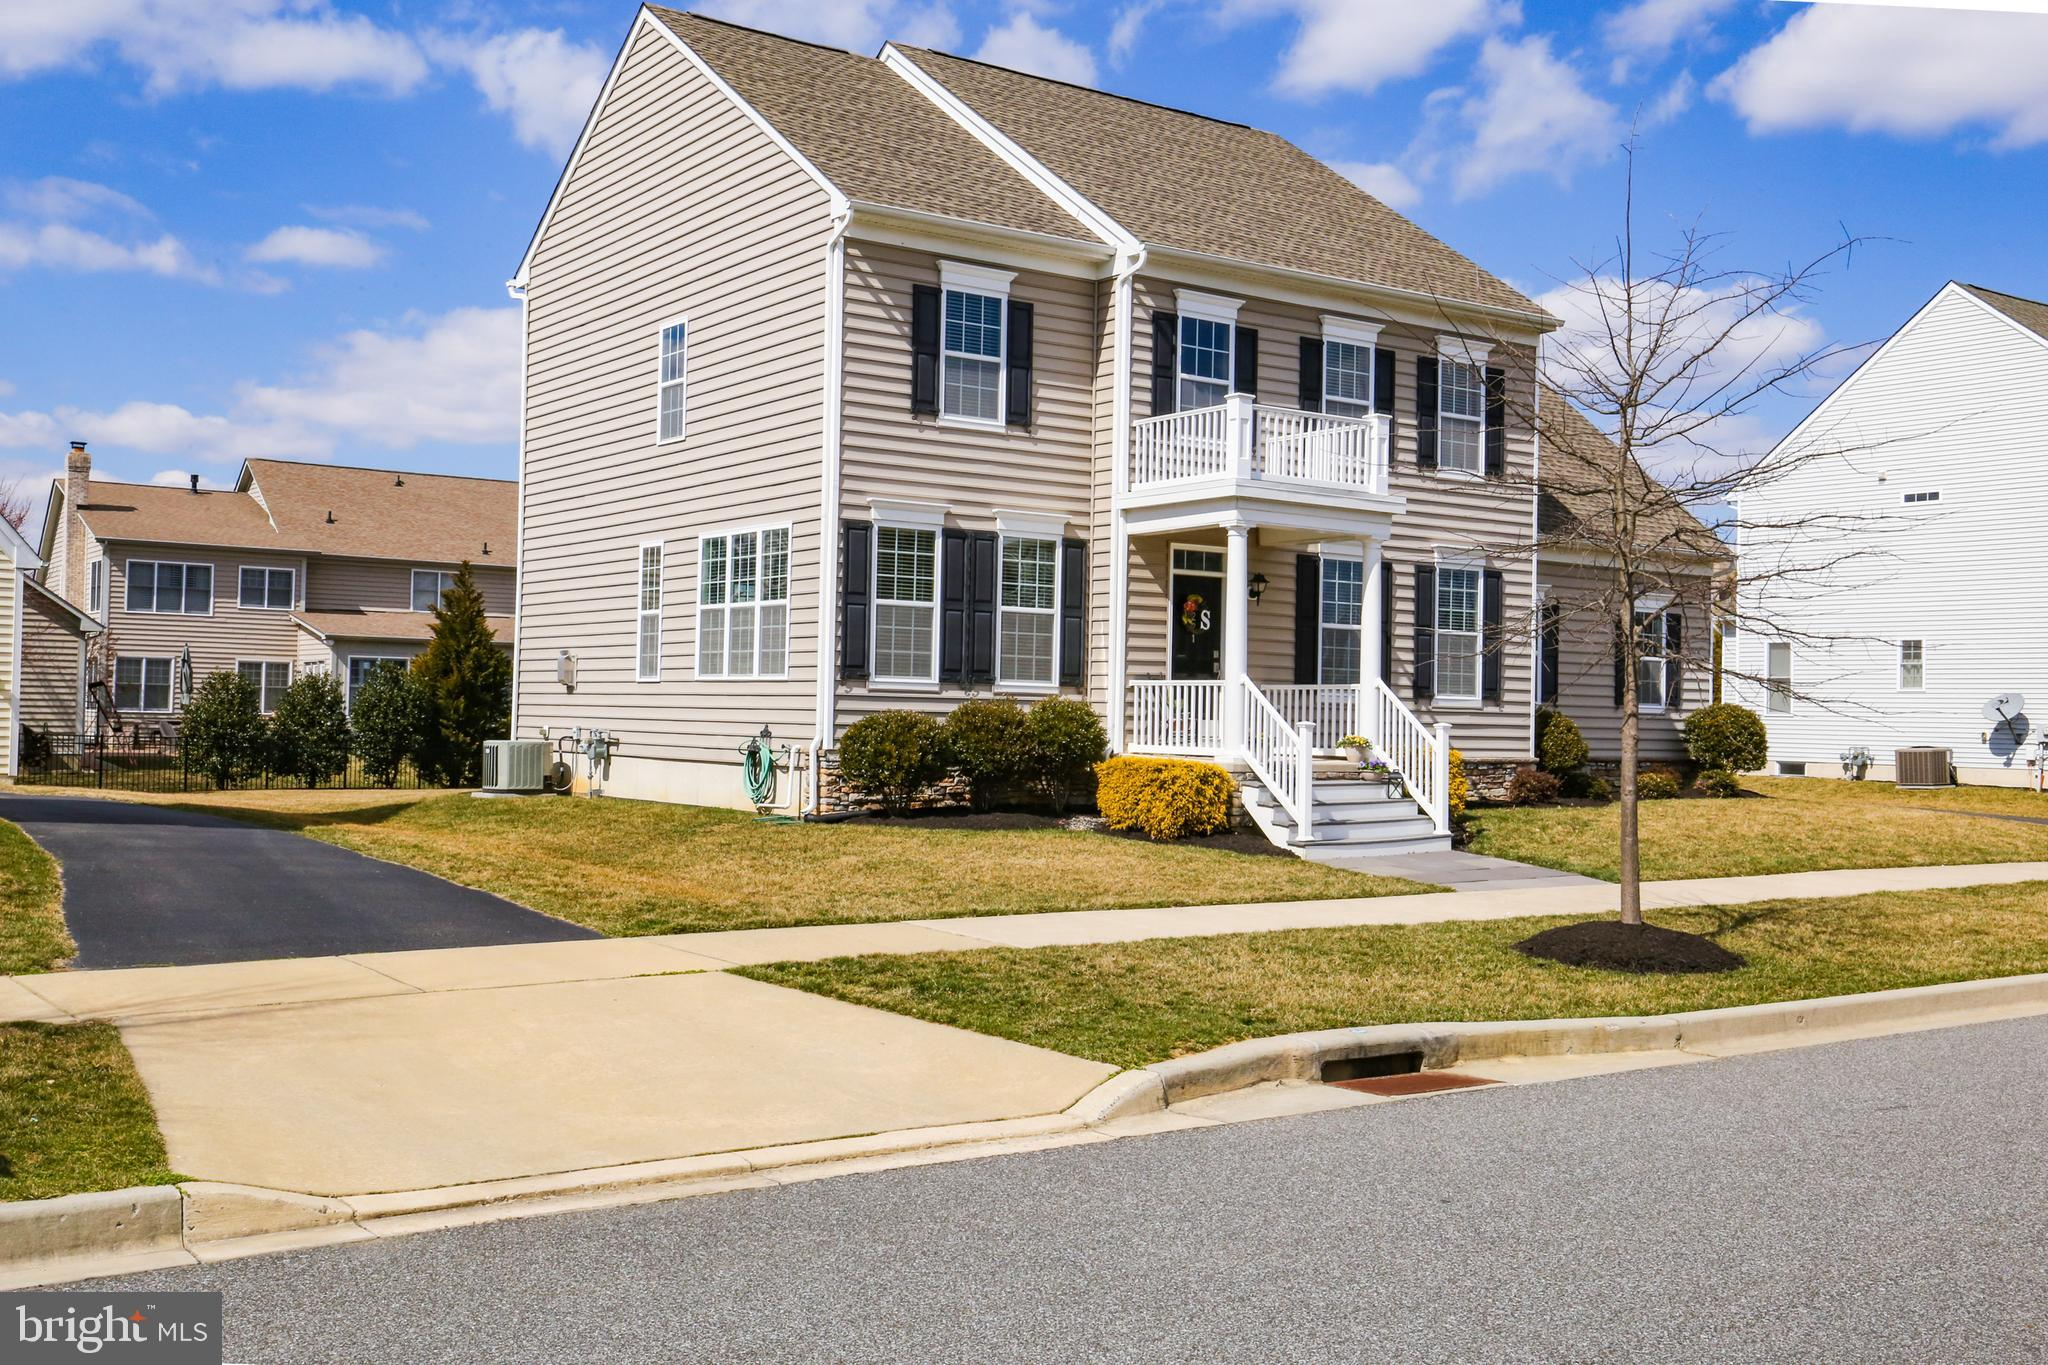 GREAT NEW PRICE!!! The exterior styling is sure to please with an updated flair! This remarkable Anderson Homes Amherst Model has numerous upgrades and improvements throughout. The side-entry garage grants convenience, while a welcoming front porch with bold columns adds tremendous curb appeal to this home. Inside, visitors are treated to an extended foyer area, yielding a splendid first impression. The unique layout flows into a dazzling kitchen which is a cook's dream; spacious island for prep-work space, maple cabinets, upgraded faucet, granite counter tops, double wall ovens, microwave and gas cooktop. Just off the kitchen, get cozy on the couch with your favorite book or watch a movie in the family room area. Causal and inviting, the dining room effortlessly compliments the living room, creating the perfect scenario for hosting holiday parties or entertaining guests. Unique side staircase leads to the second floor. Upstairs the master suite has a large closet for all your clothes, shoes, and dress attire. Wait until you see the Owner's bathroom, WOW!  3 additional good-size bedrooms conveniently located near the hallway bathroom and linen closet. Ready to be finished for your own 'man cave' or 'game room' is the full basement area with 9' ceilings and egress-exit. Completing the plan the new homeowner will appreciate the expansive 2-car garage and oversized driveway for ample parking. All the work is done just move in and located in Appoquinimink School District. Parkside offers a small town charm with modern conveniences throughout the community. Pedestrian friendly tree lined sidewalks and paths lead to the local park.. Enjoy the club house, pool, fitness center, tennis courts, and tot lot. Come tour this GEM today and make it your OWN!